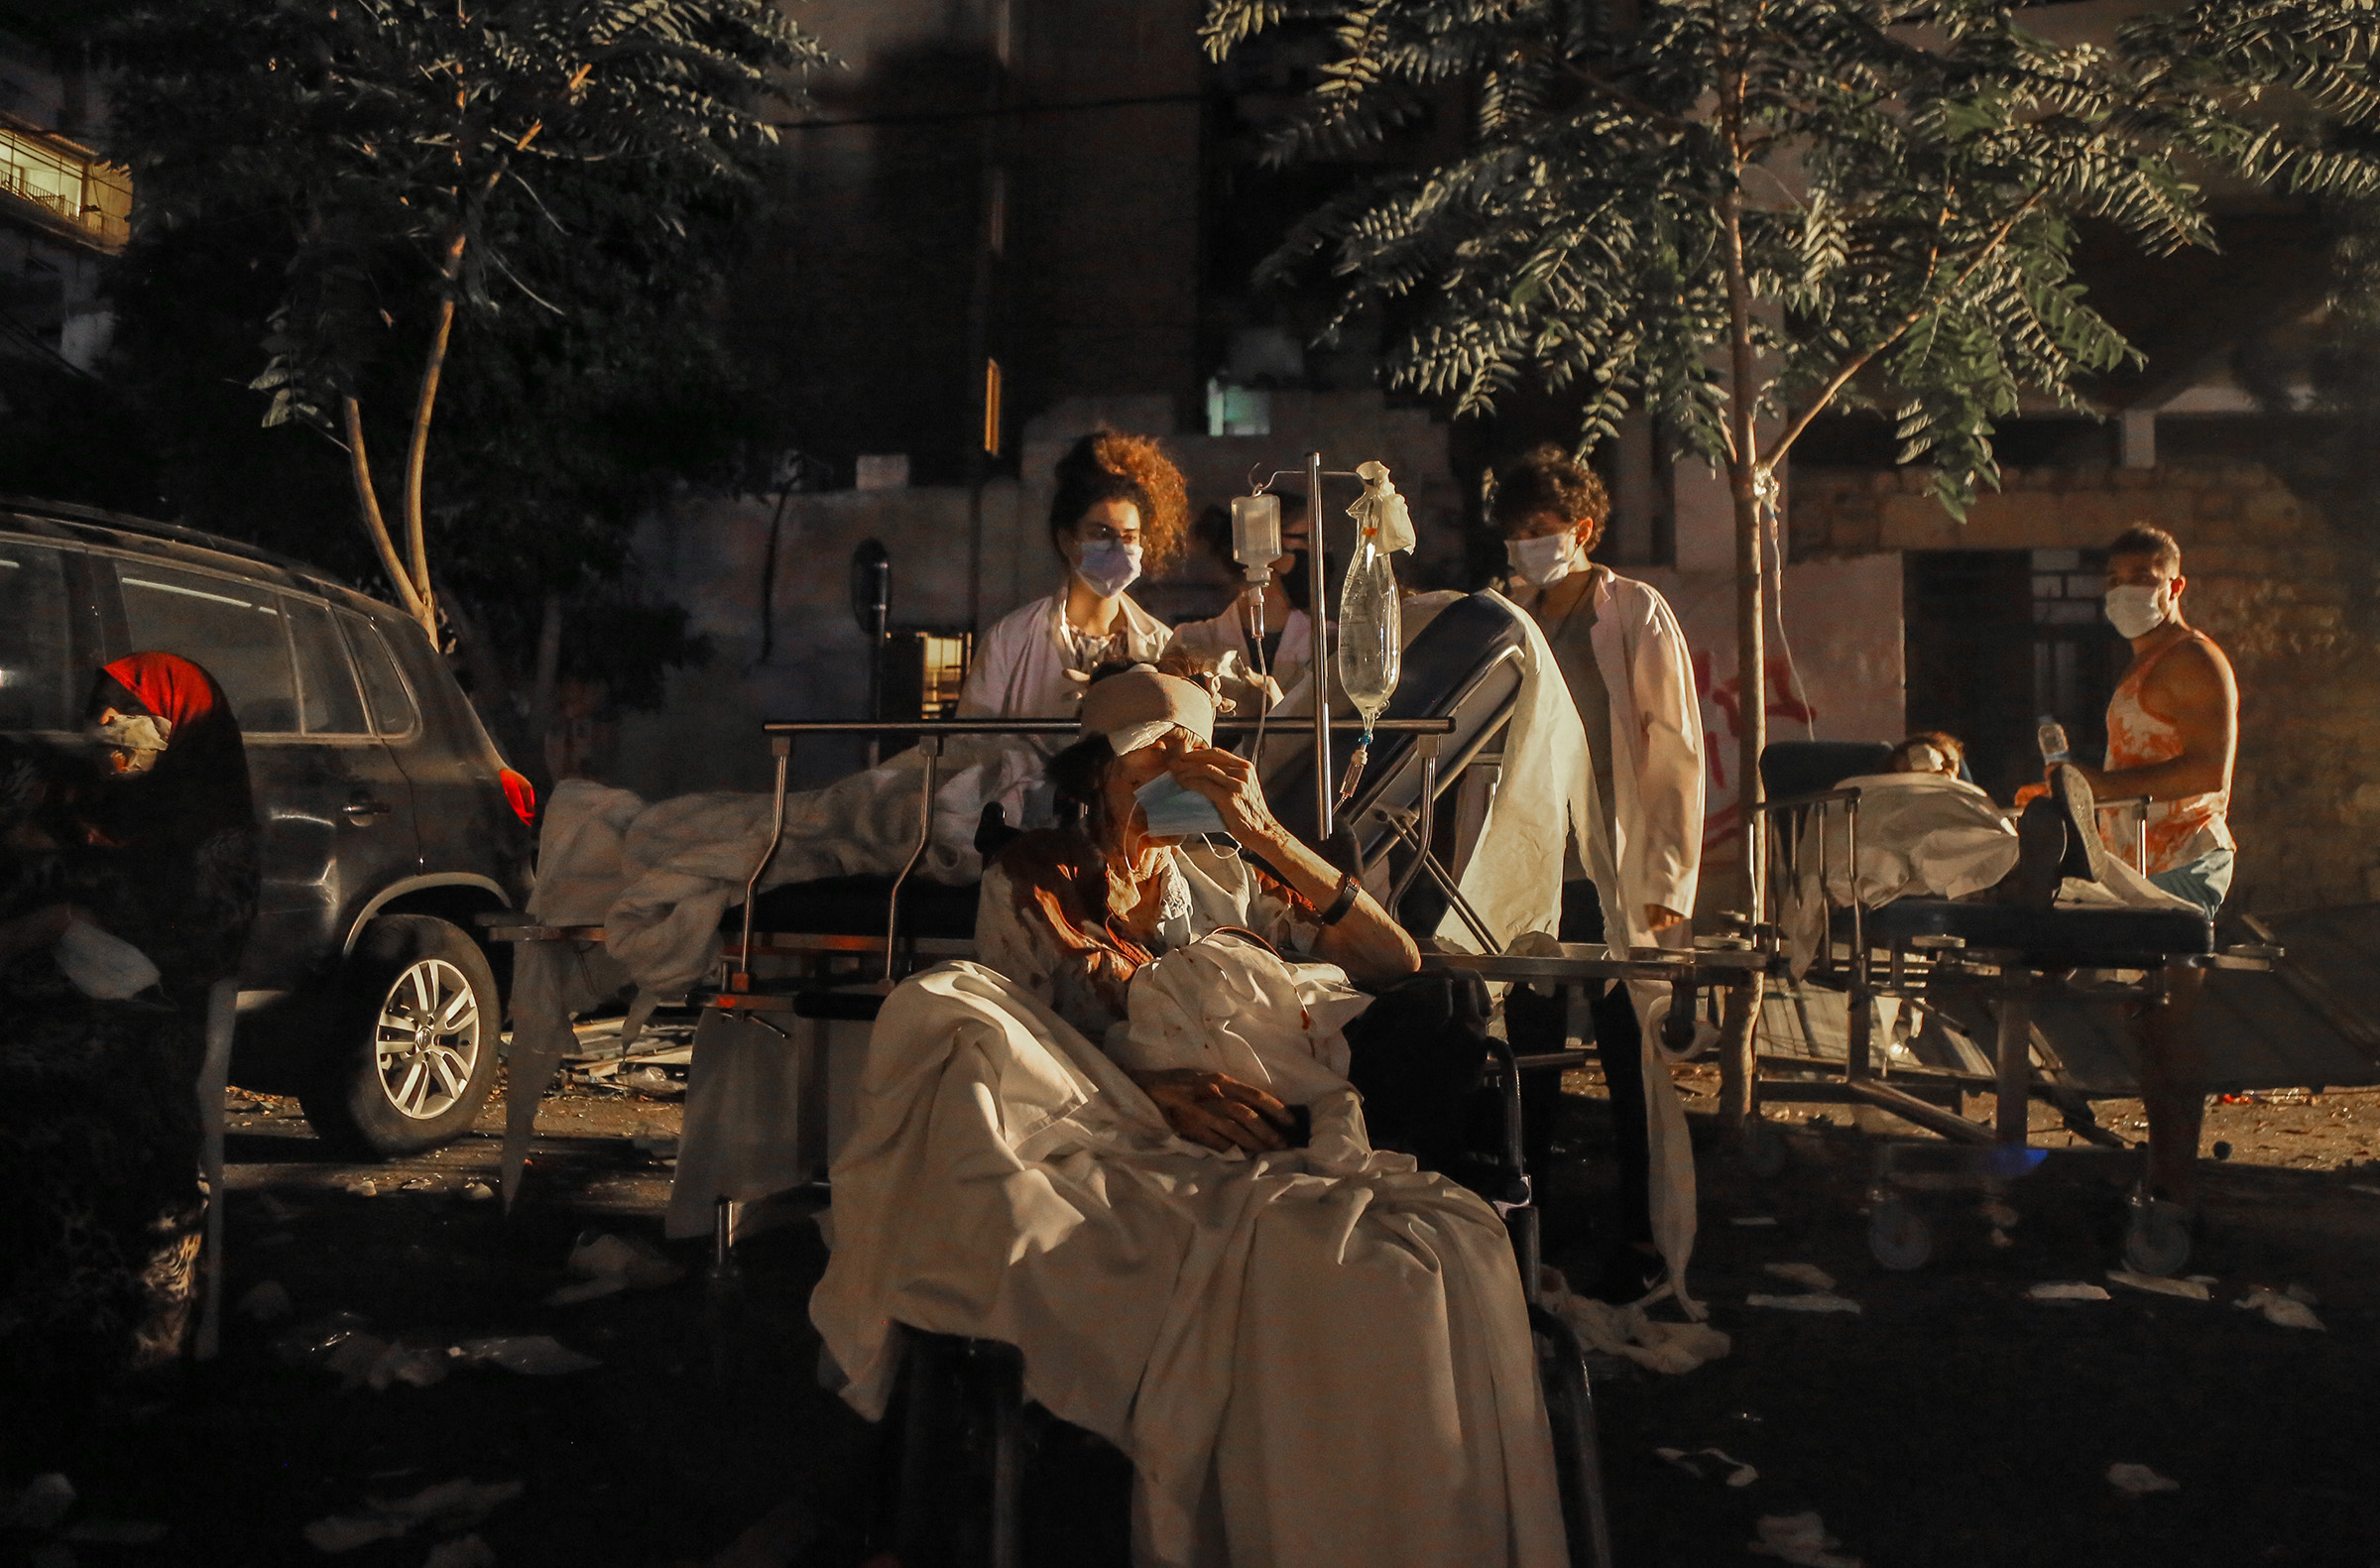 Wounded people receive treatment in the parking lot of Al Roum Hospital, following a a massive explosion in Beirut's port on August 4, 2020.